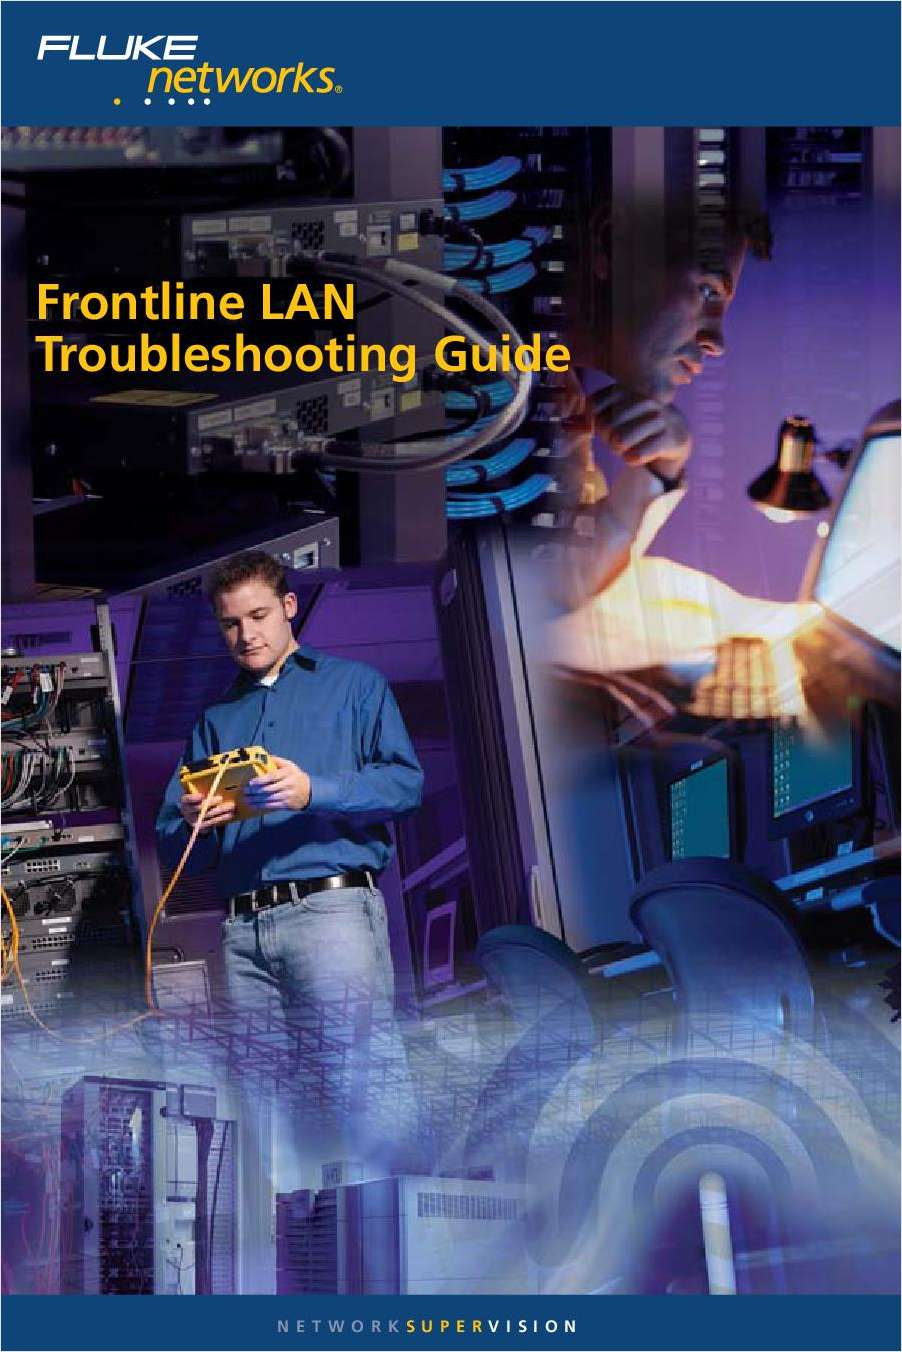 Frontline LAN Troubleshooting Guide